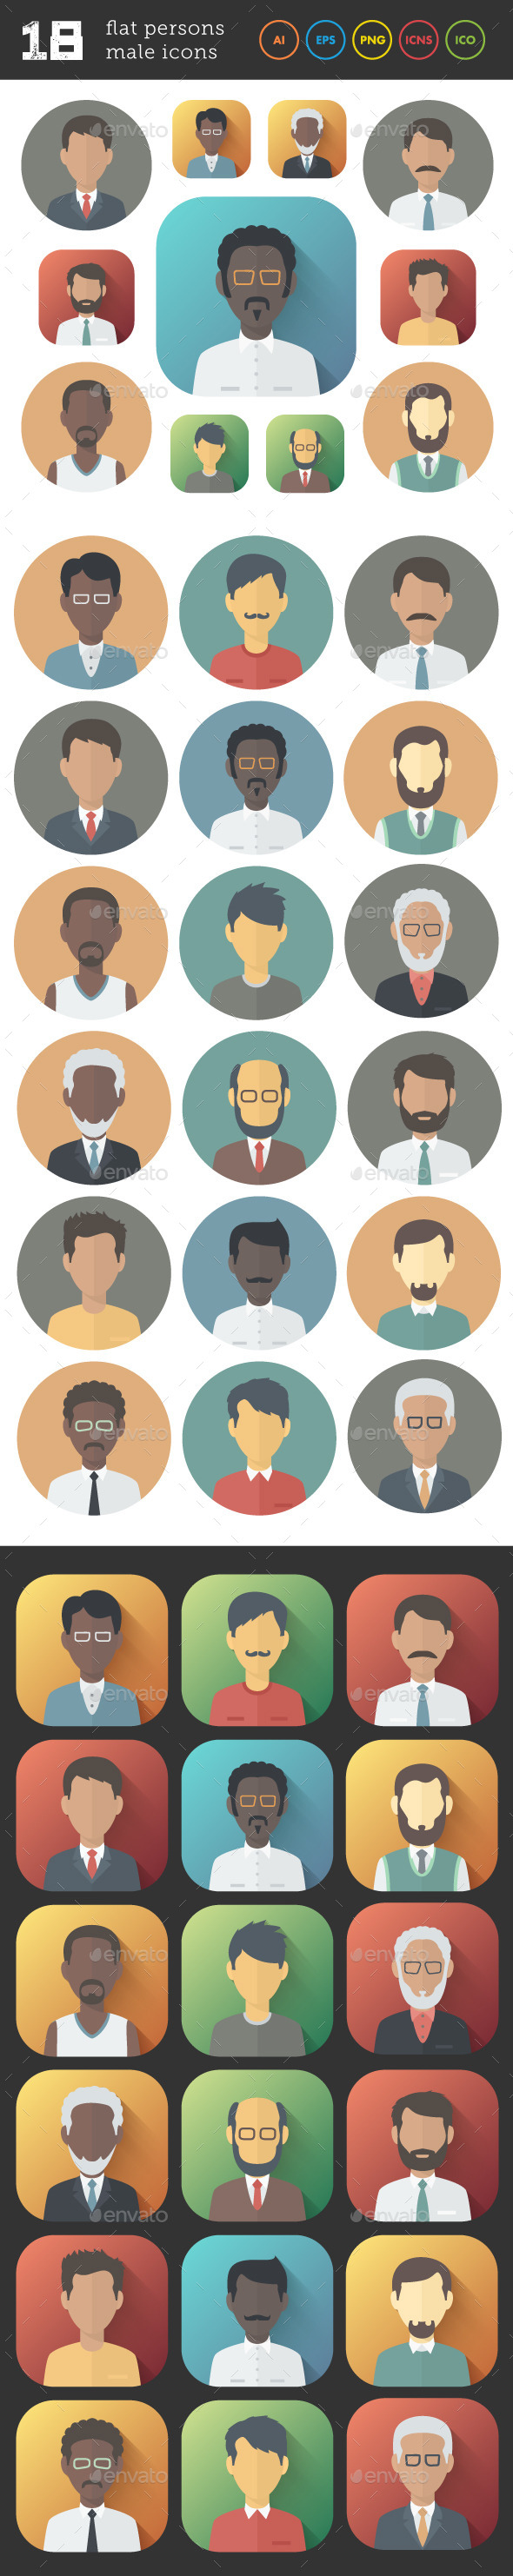 Flat Icons Set of Male Persons